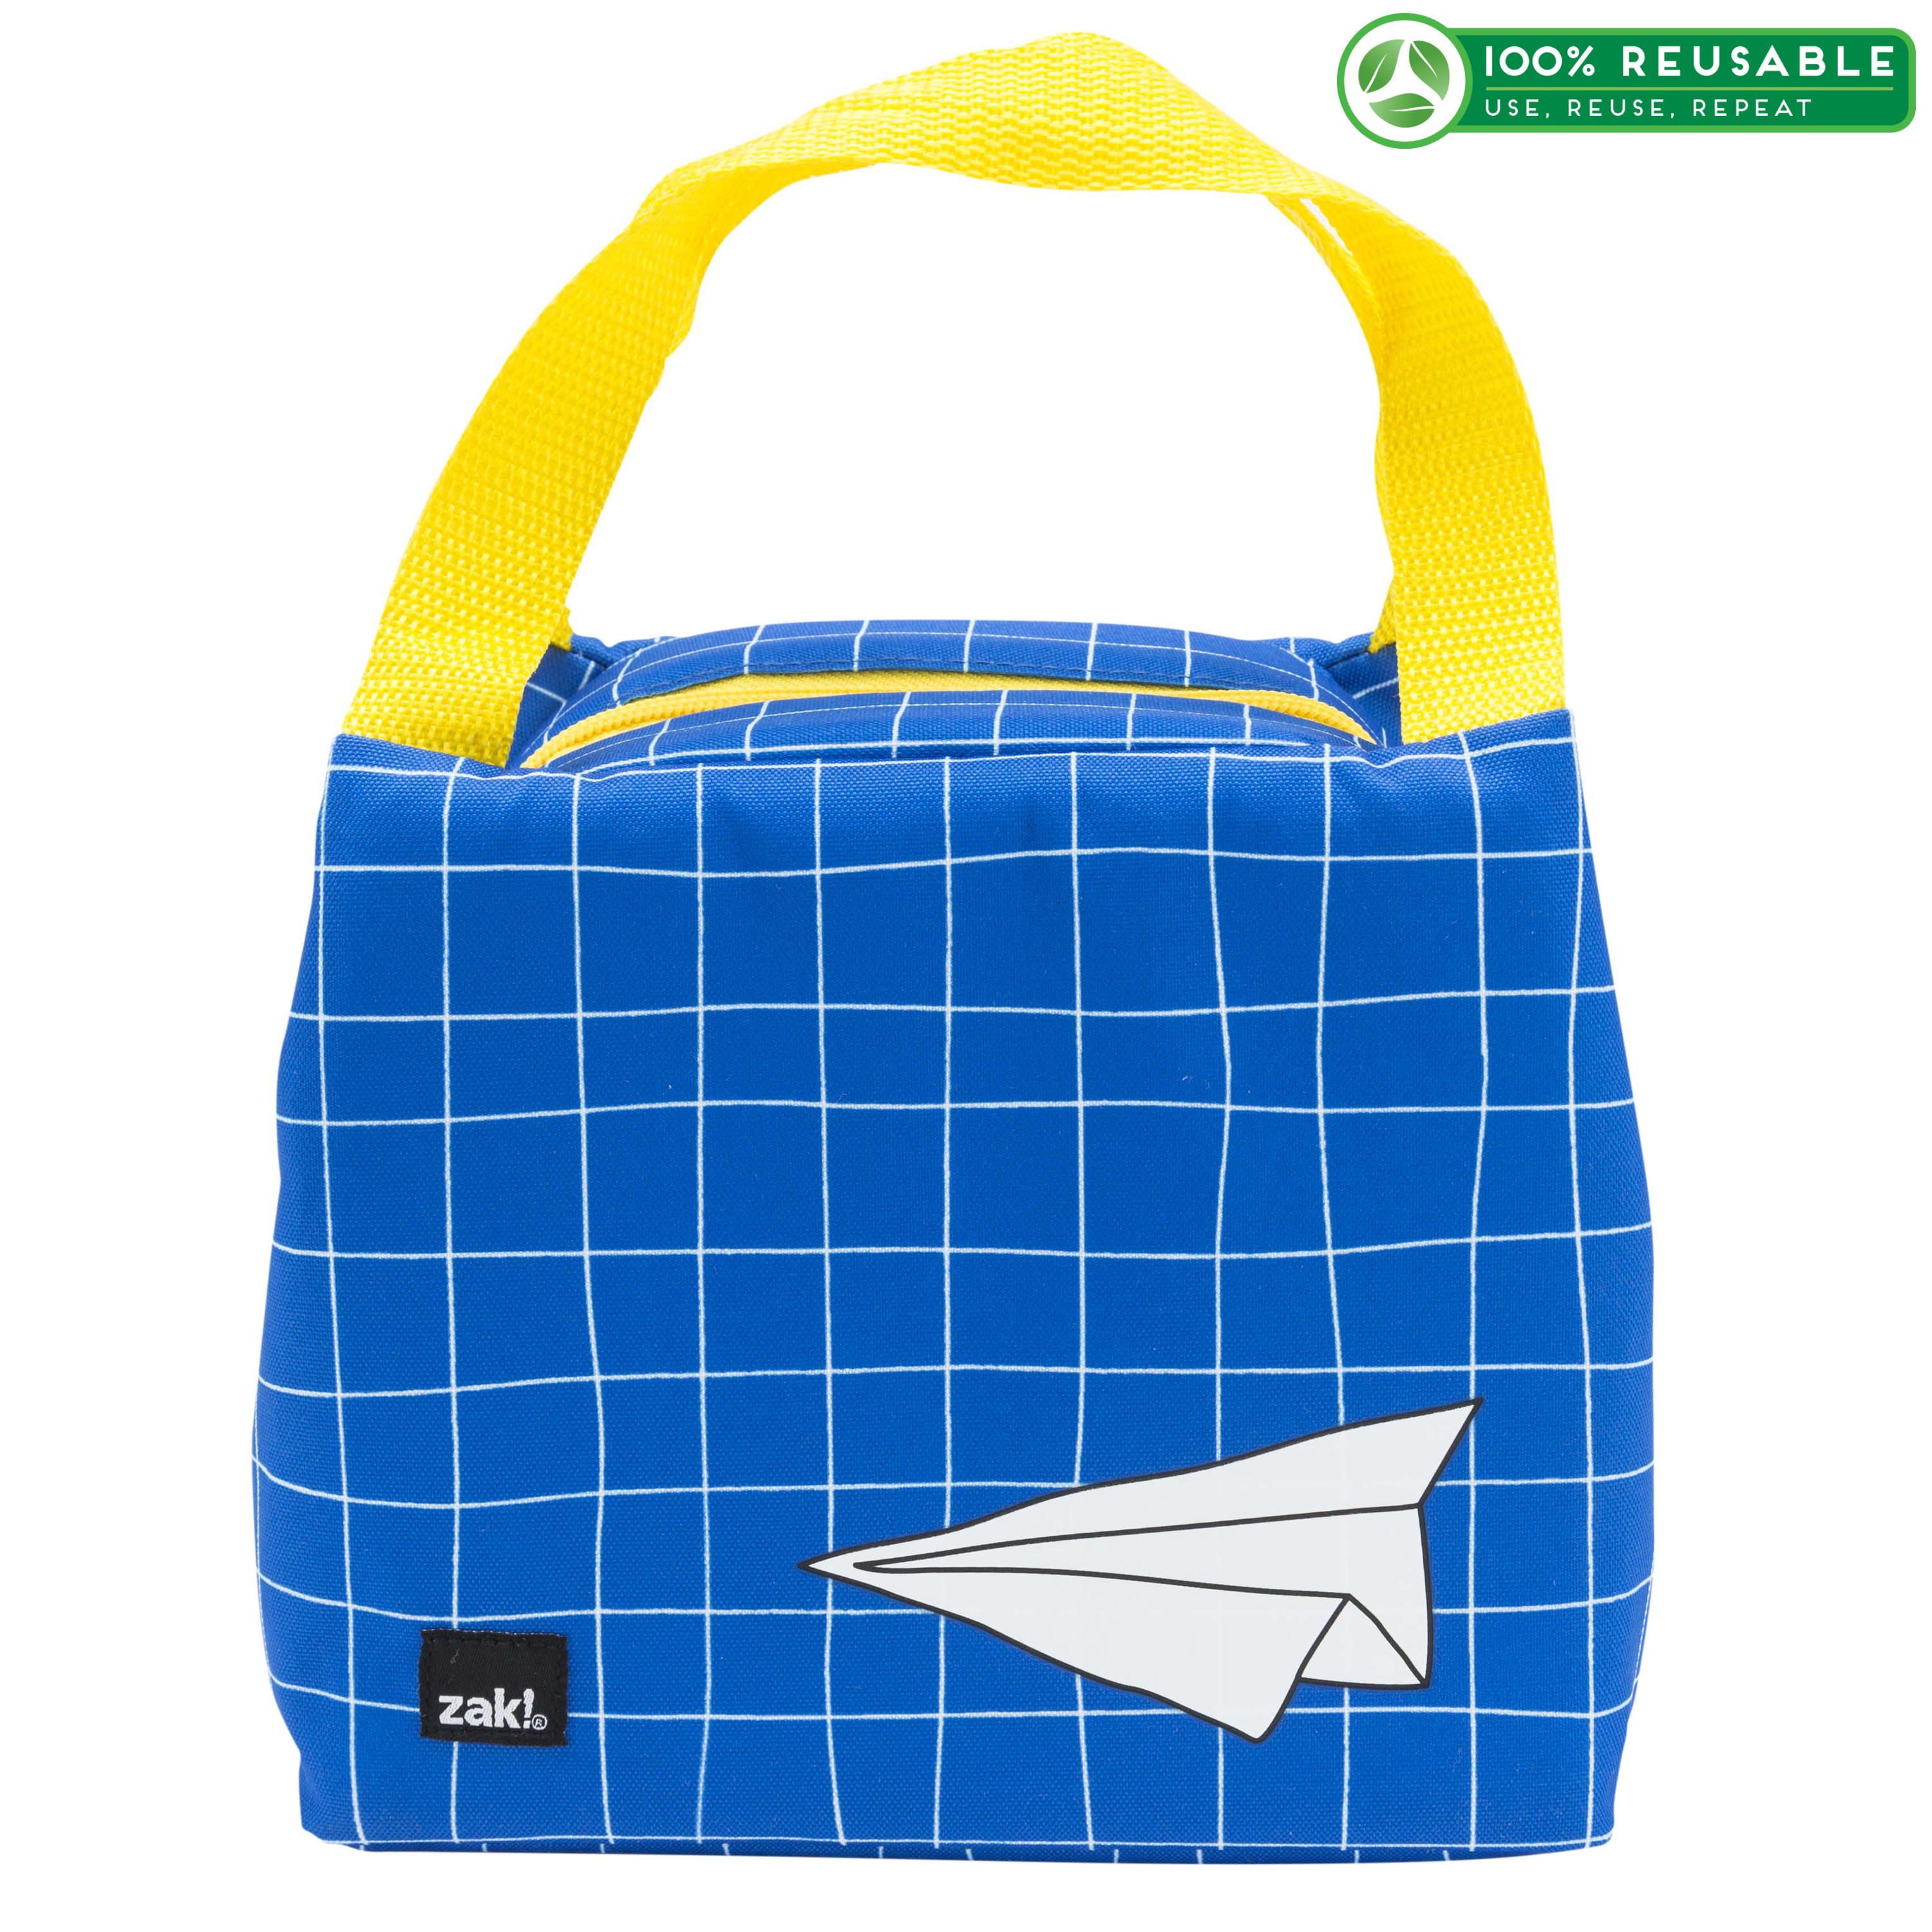 Grid Lock Purse Style Insulated Reusable Lunch Bag, Planes slideshow image 1